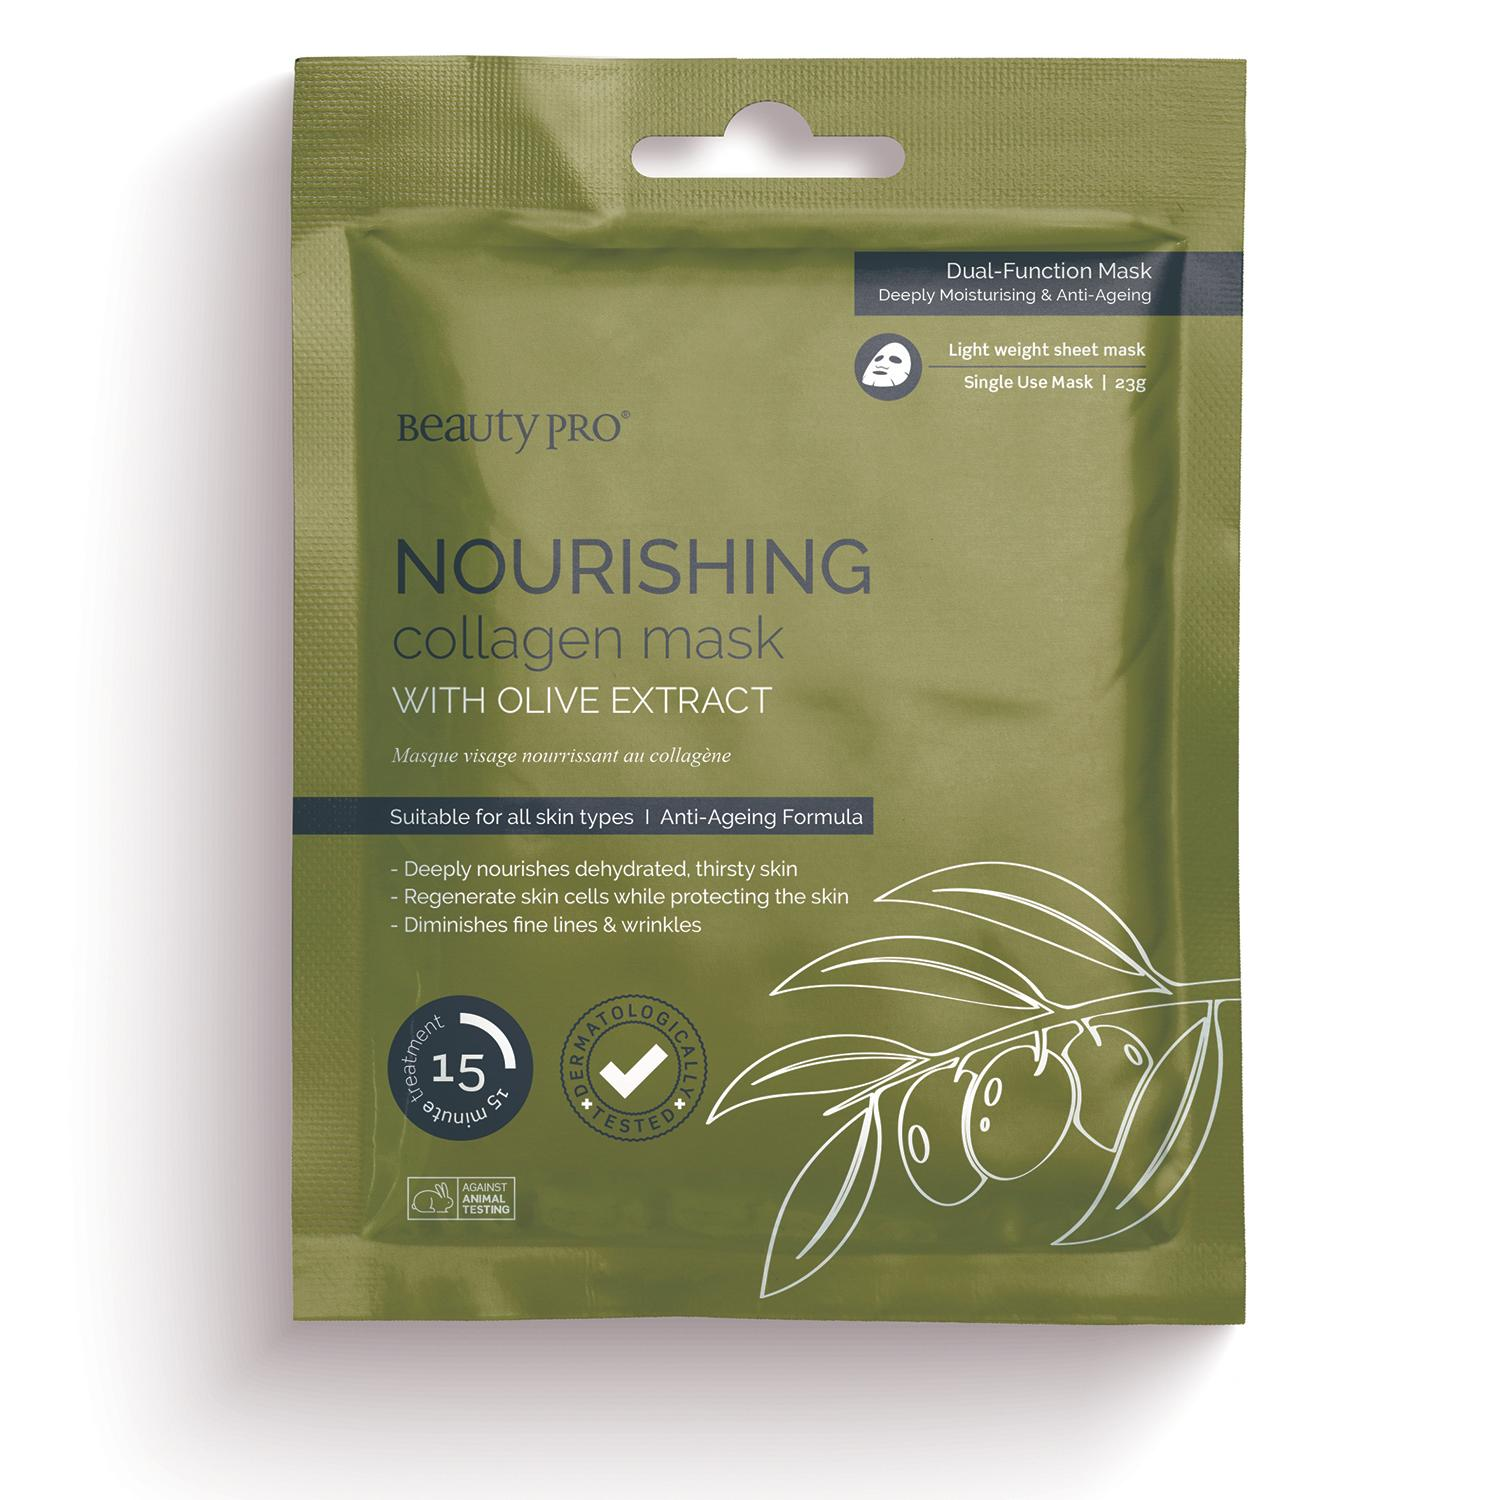 NOURISHING Collagen Sheet Mask with Olive Extract 23g